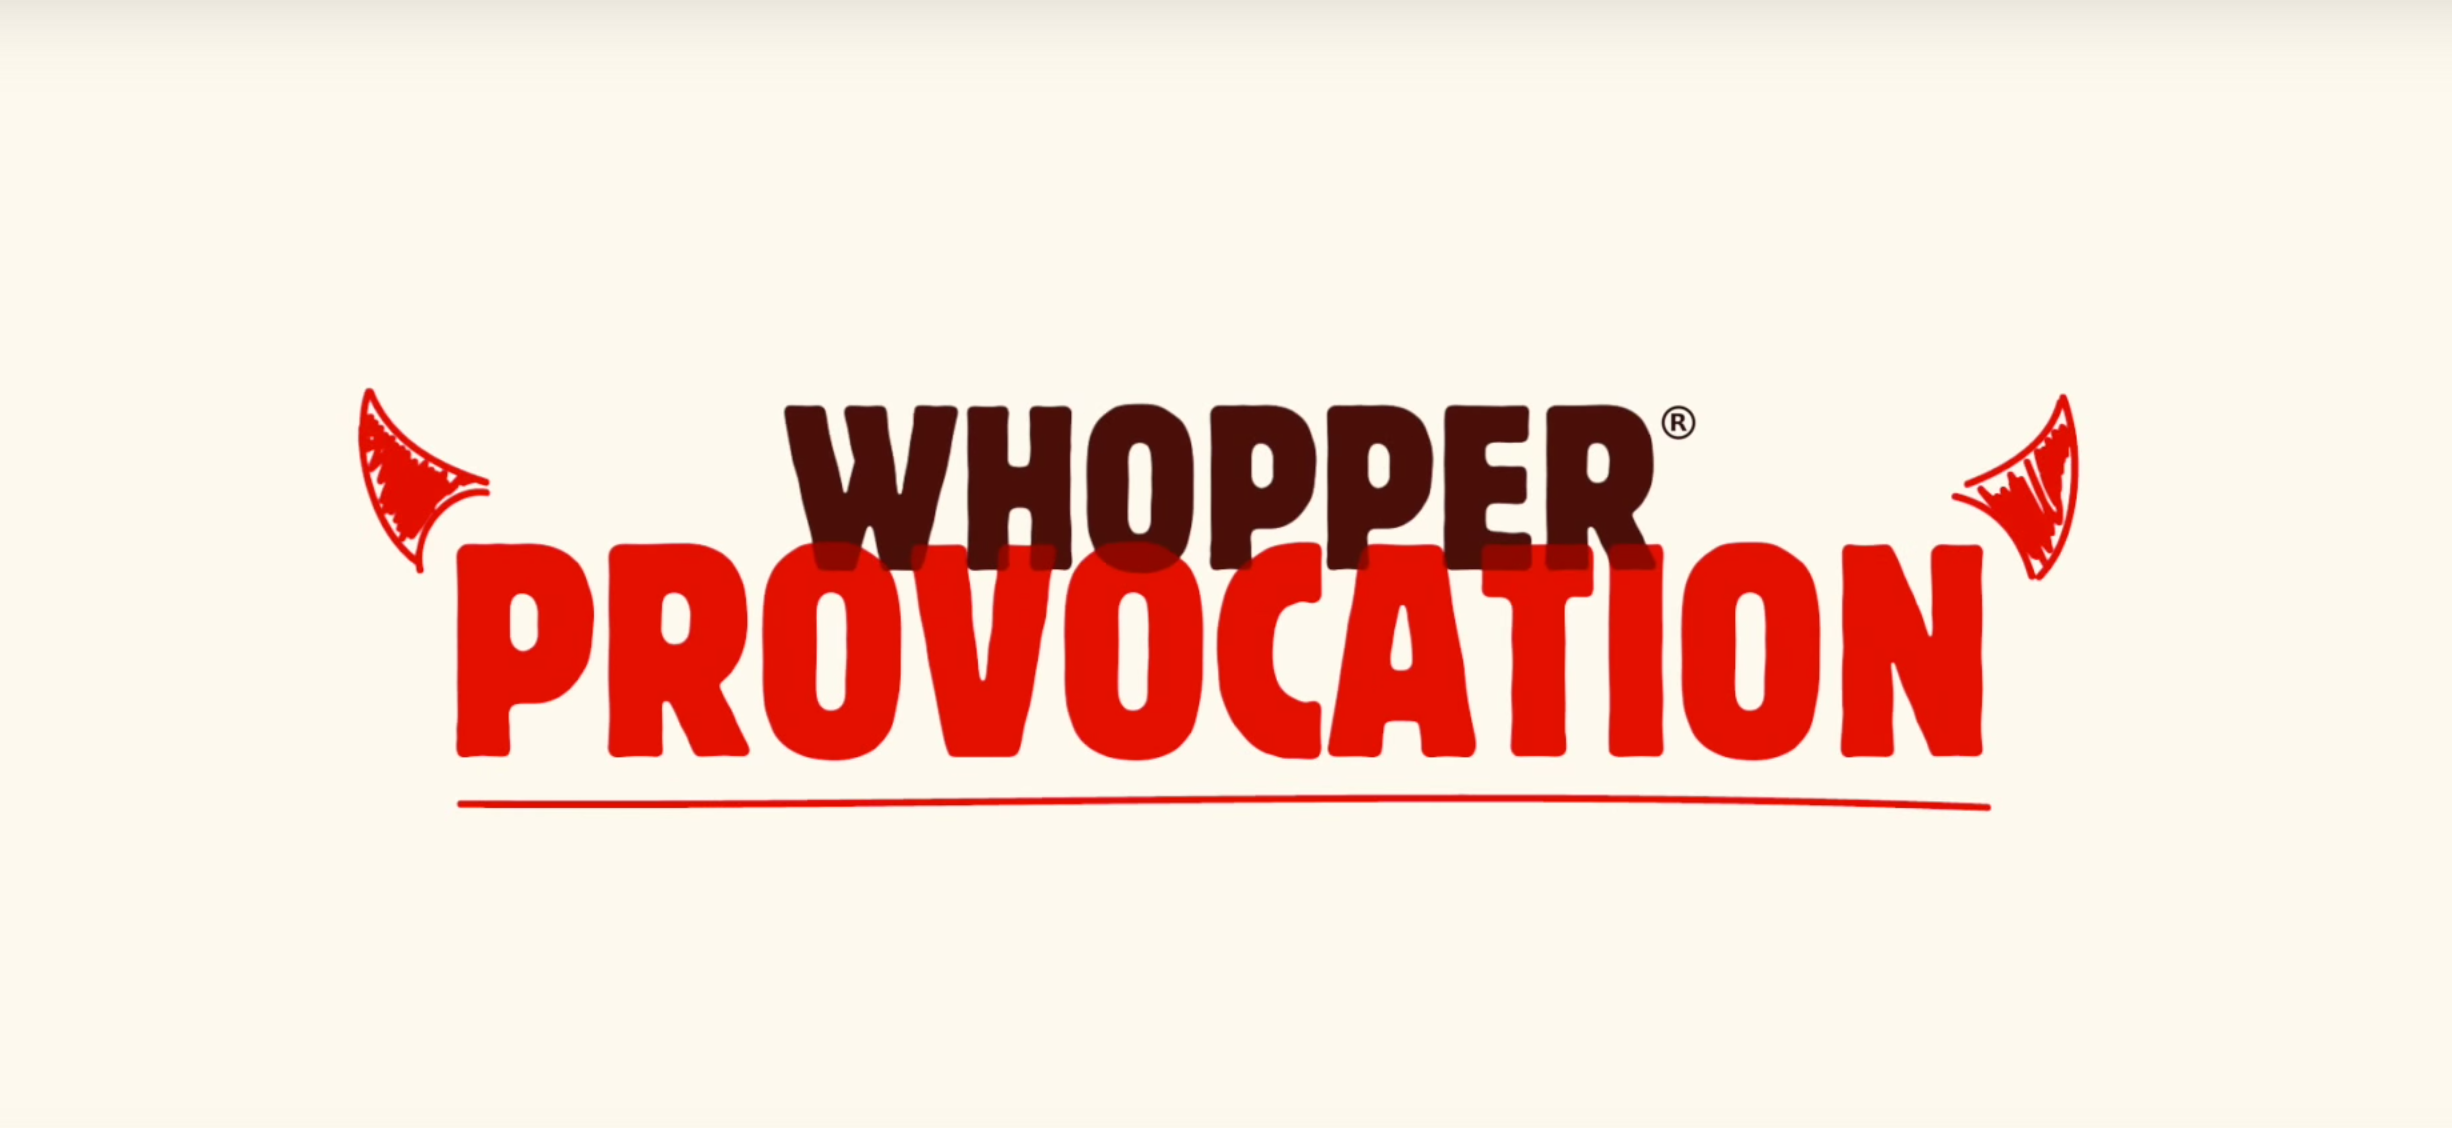 BurgerKing_WhopperProvocation_ope